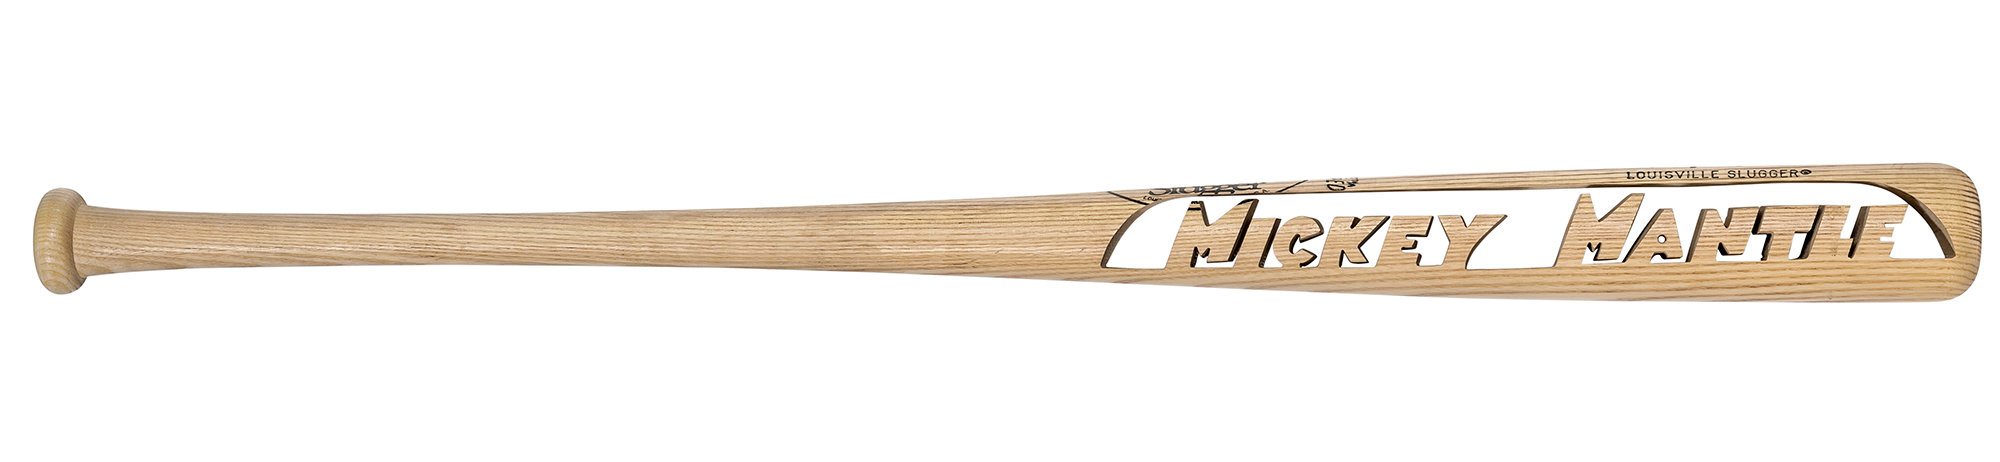 Lot image - Mickey Mantle Bat Carved with Mickey Mantle in Openwork Letters